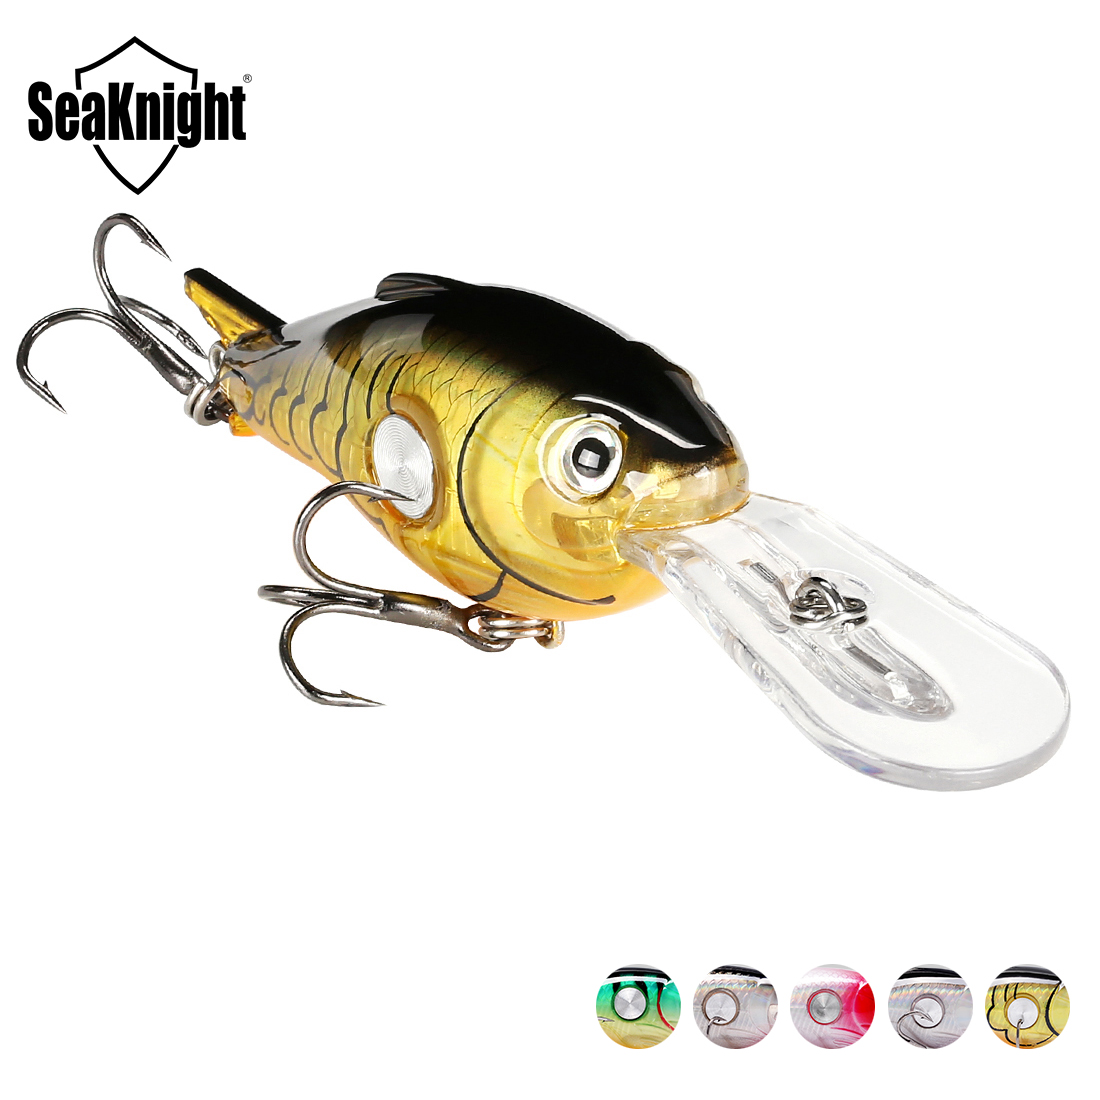 SeaKnight SK003 Crankbait Fishing Lure 1PC 10g 55mm 1.8-3.9M Floating Wobbler Fishing Lure Deep Diving Crank Bait Hard Saltwater